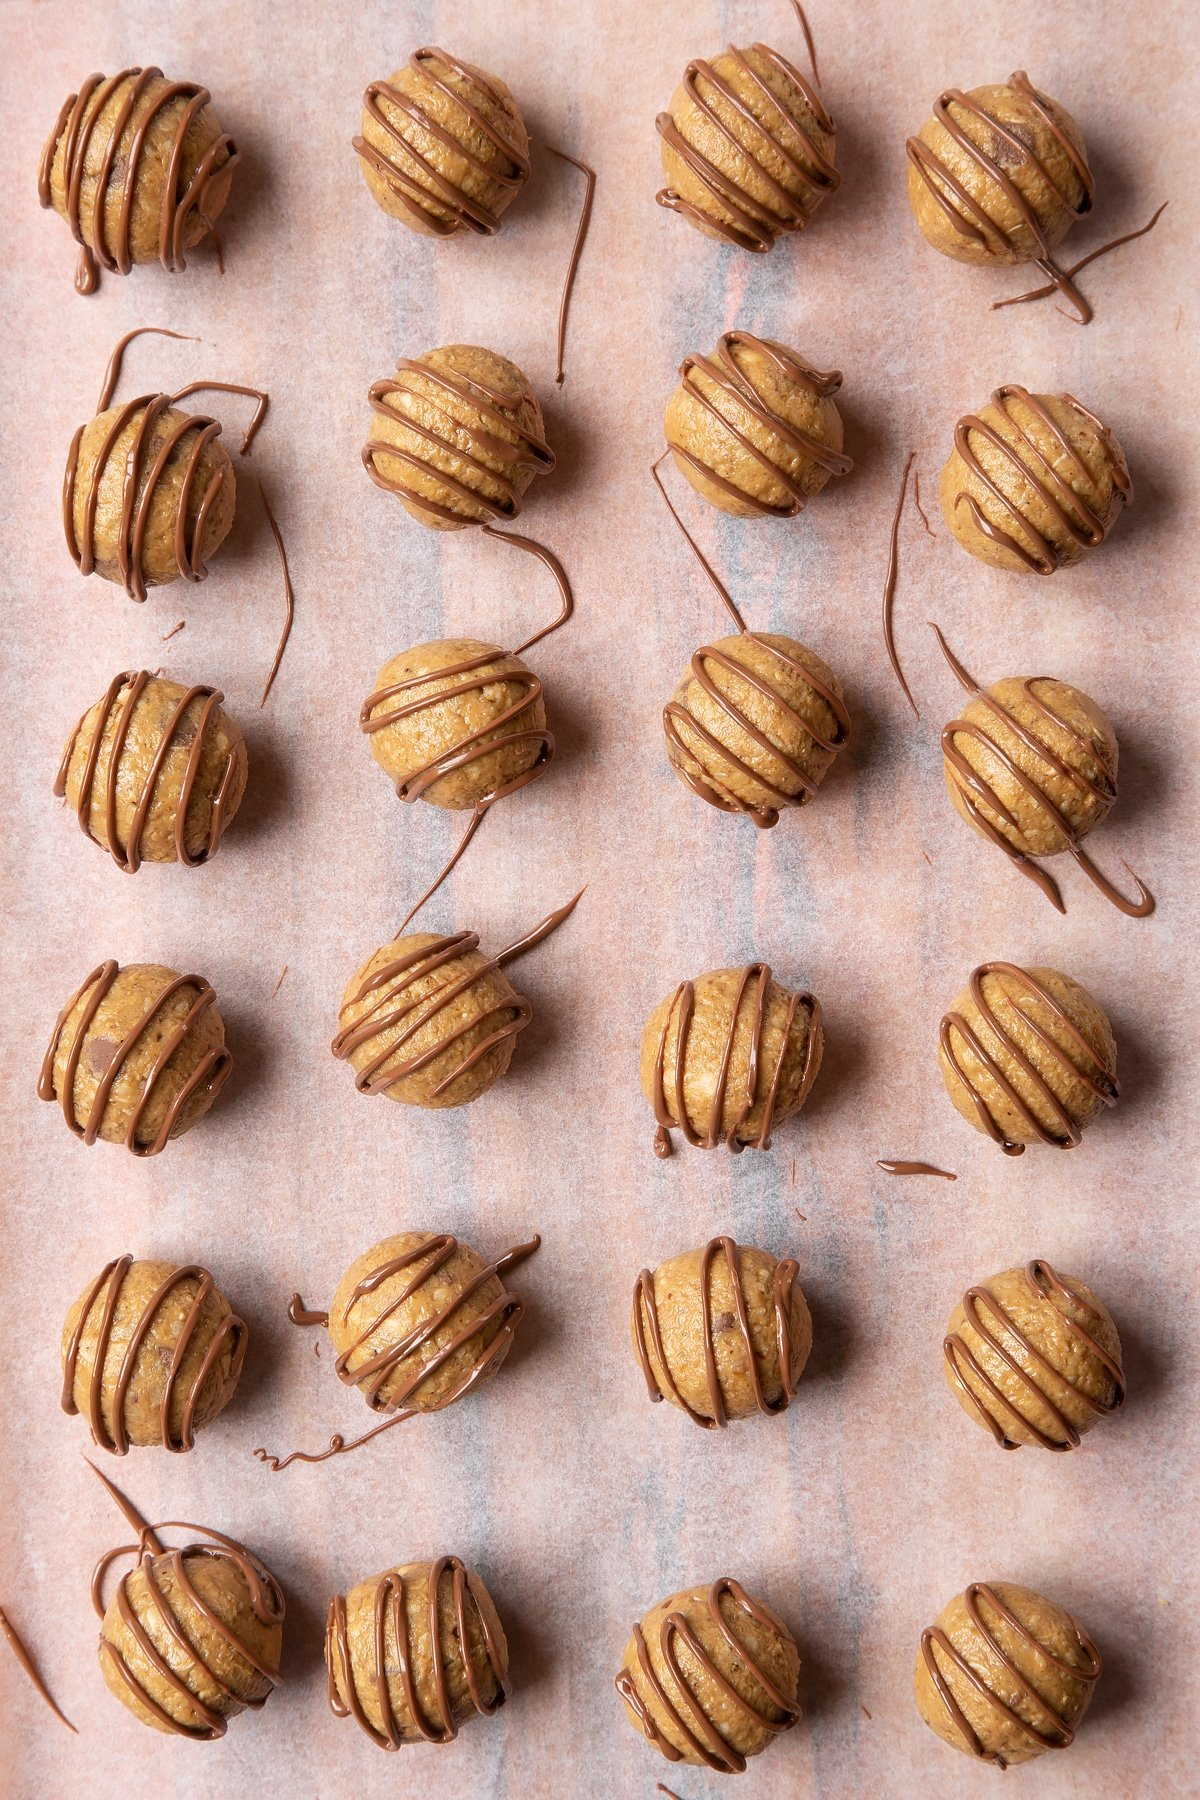 Peanut butter and oatmeal balls decorated with chocolate on a sheet of baking paper.